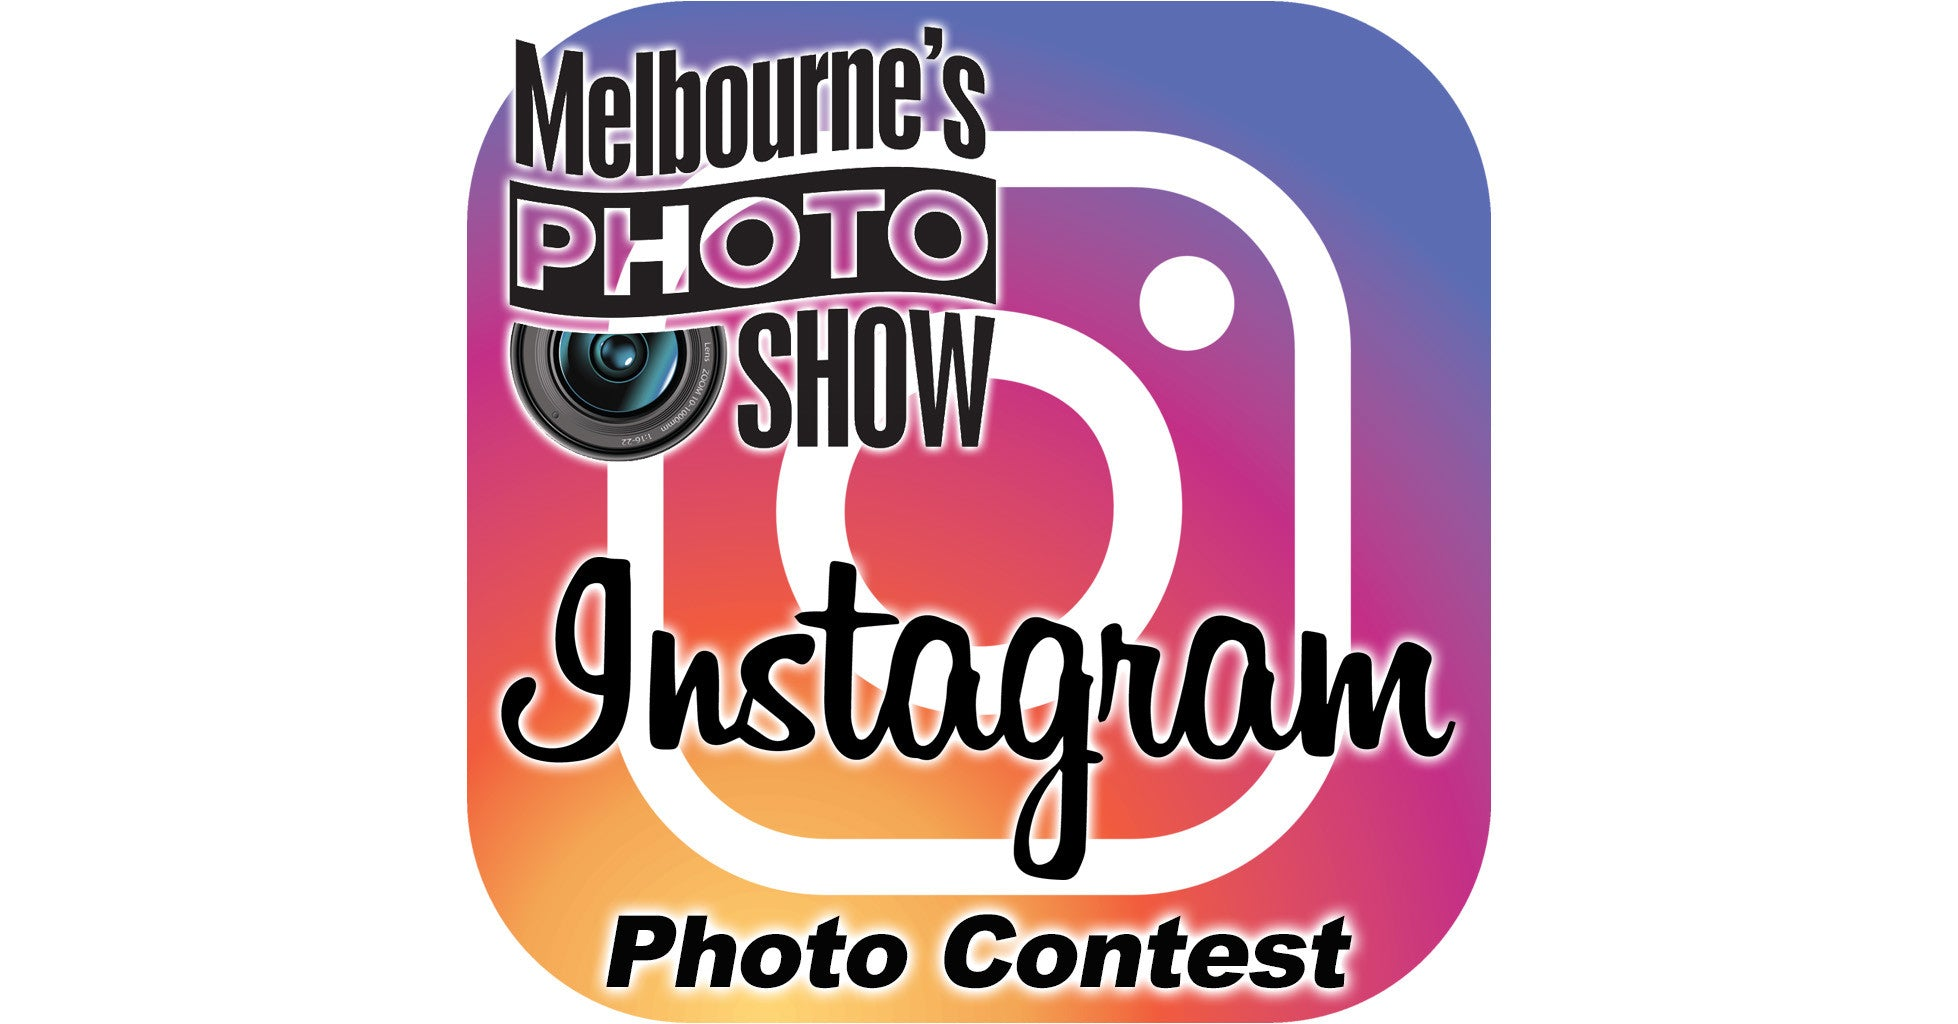 Instagram Photo Contest - Sat. 19th November at Melbourne's Photo Show